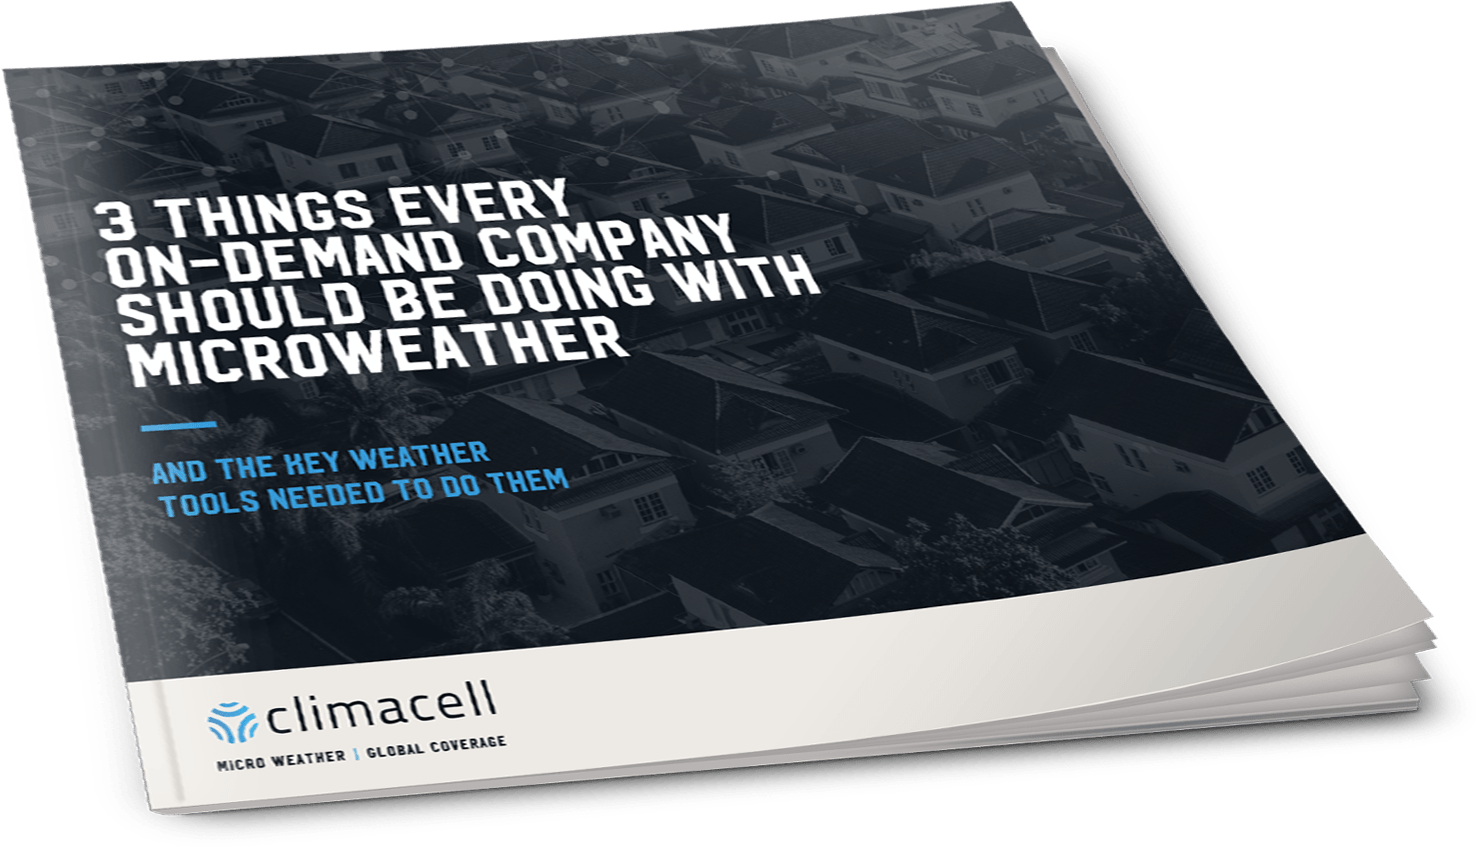 3 Things Every On-Demand Company Should be Doing with Microweather | ClimaCell | Micro Weather. Global Coverage.